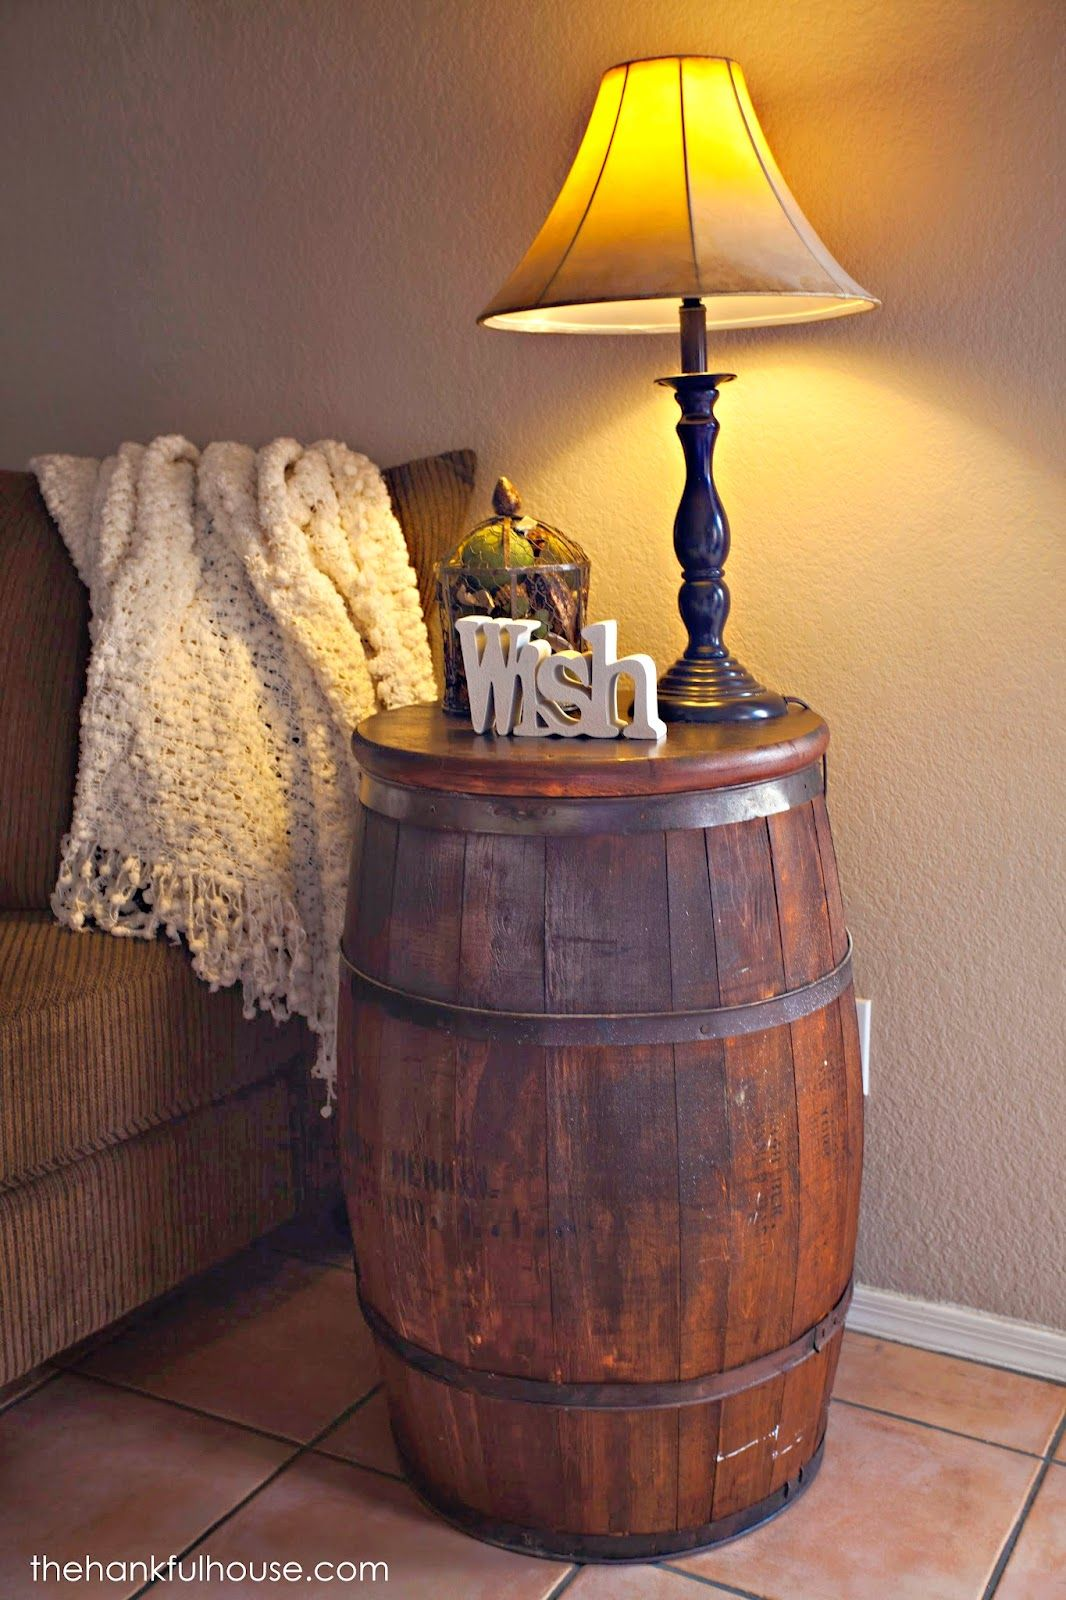 barrel end table inspiration dream home house tables accent raton furniture iron side industrial style wooden floor lamp beautiful round tablecloths modern pedestal frog rain drum